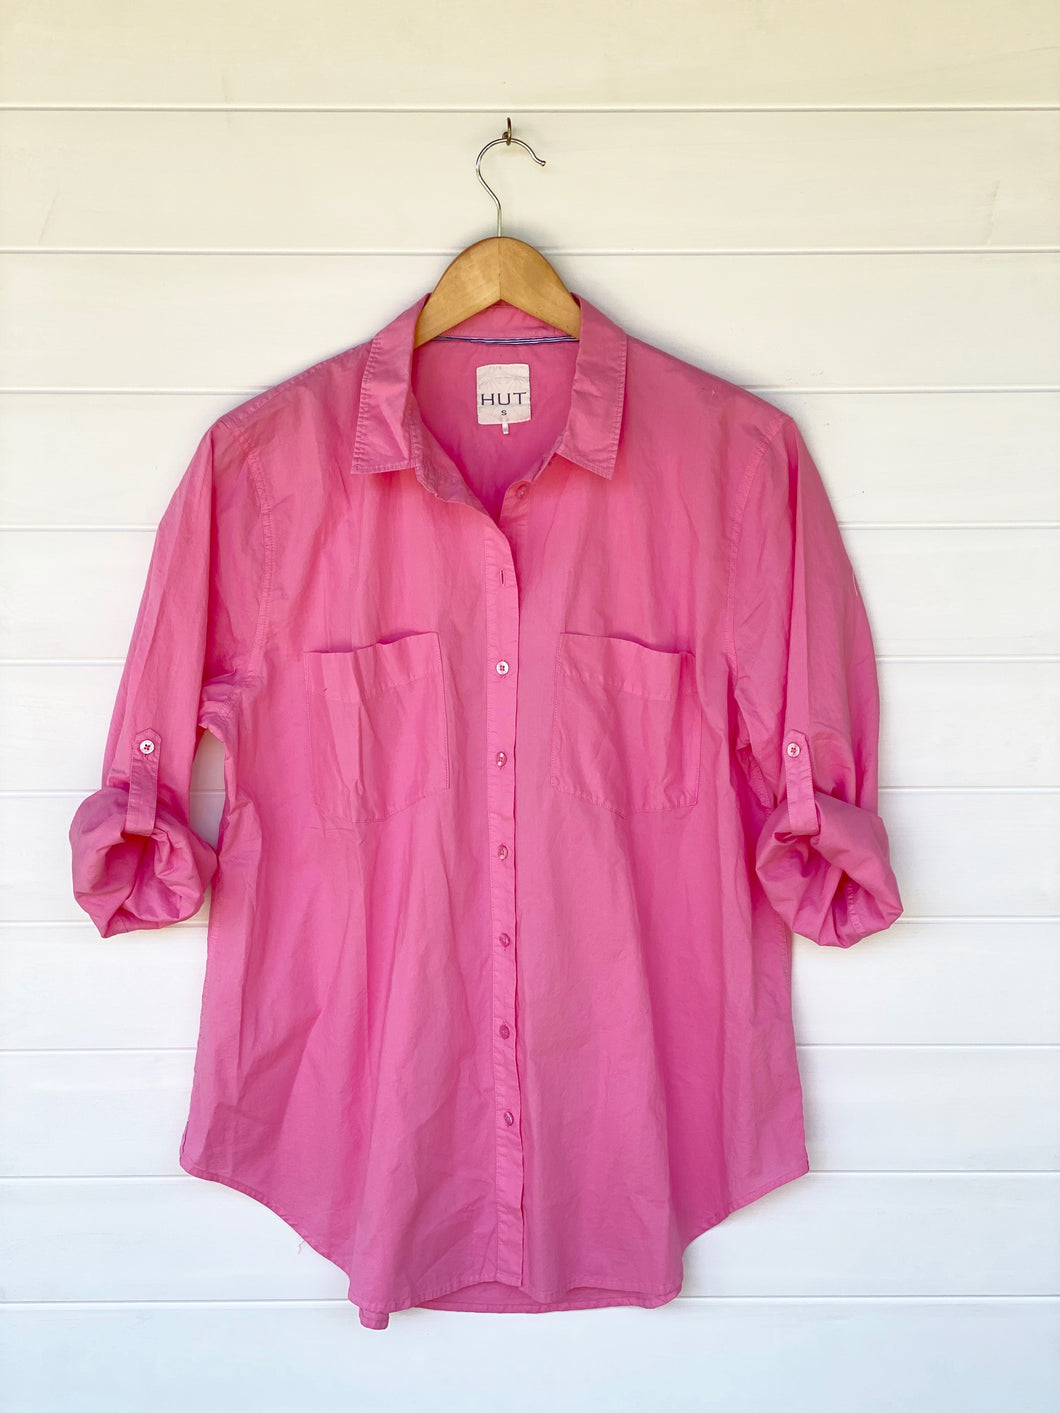 HUT Cotton Poplin Shirt - Pink Lemonade